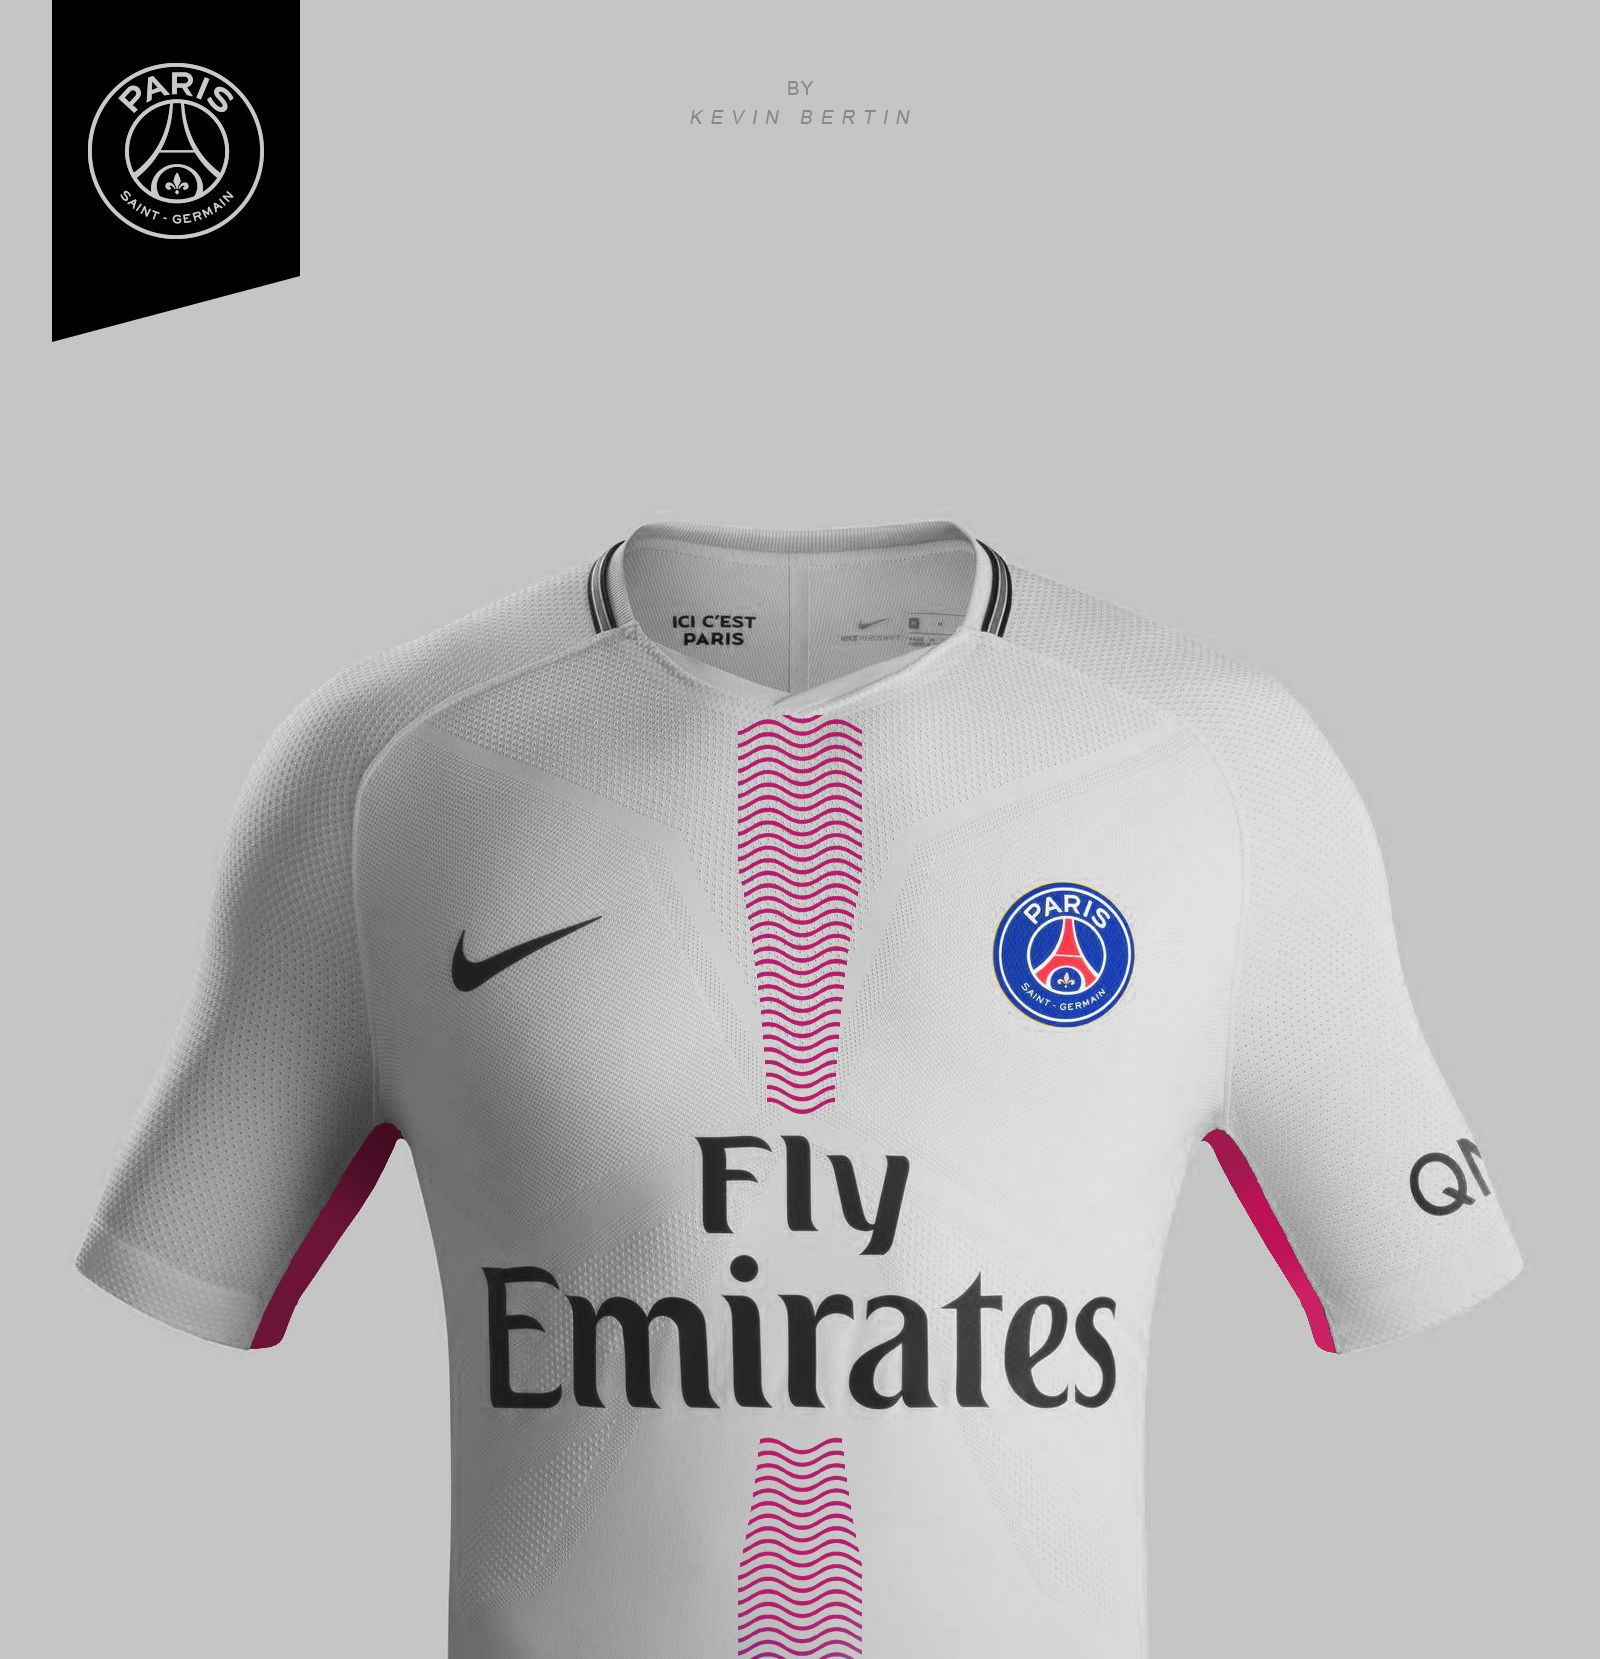 PSG Concept Design Jersey maillot 2018-2019 away Paris Saint-Germain Nike  By Kevin